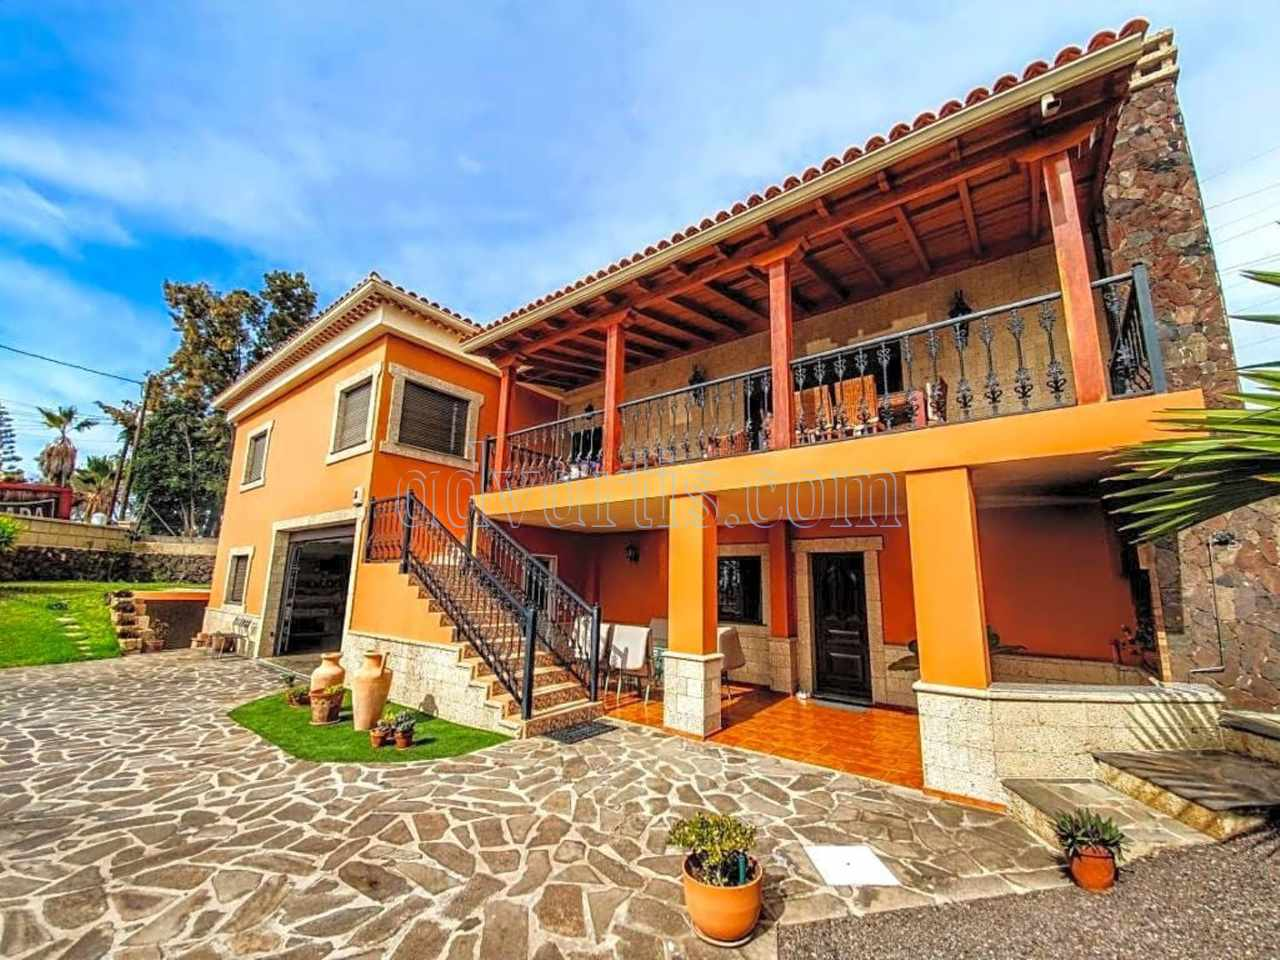 6 bedroom villa for sale in Buzanada, Tenerife €479.000